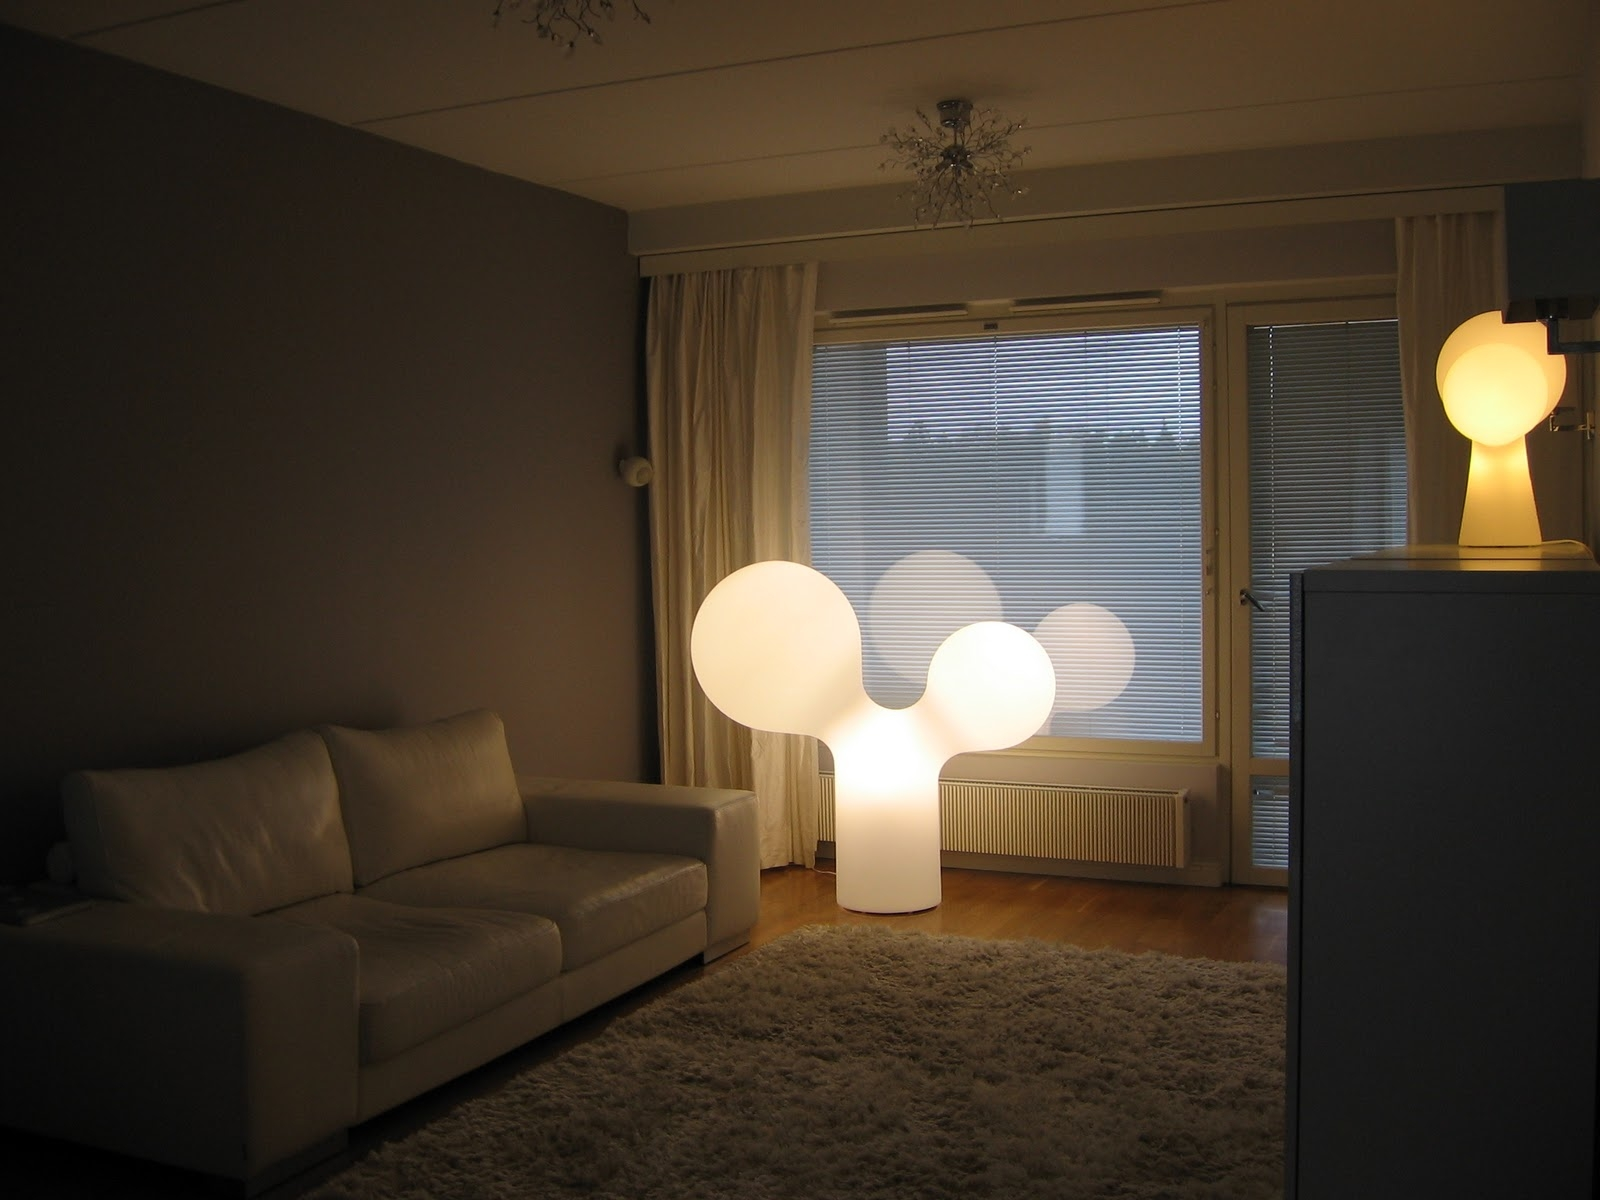 Lampe-Double-Bubble-Eero-Aarnio-05